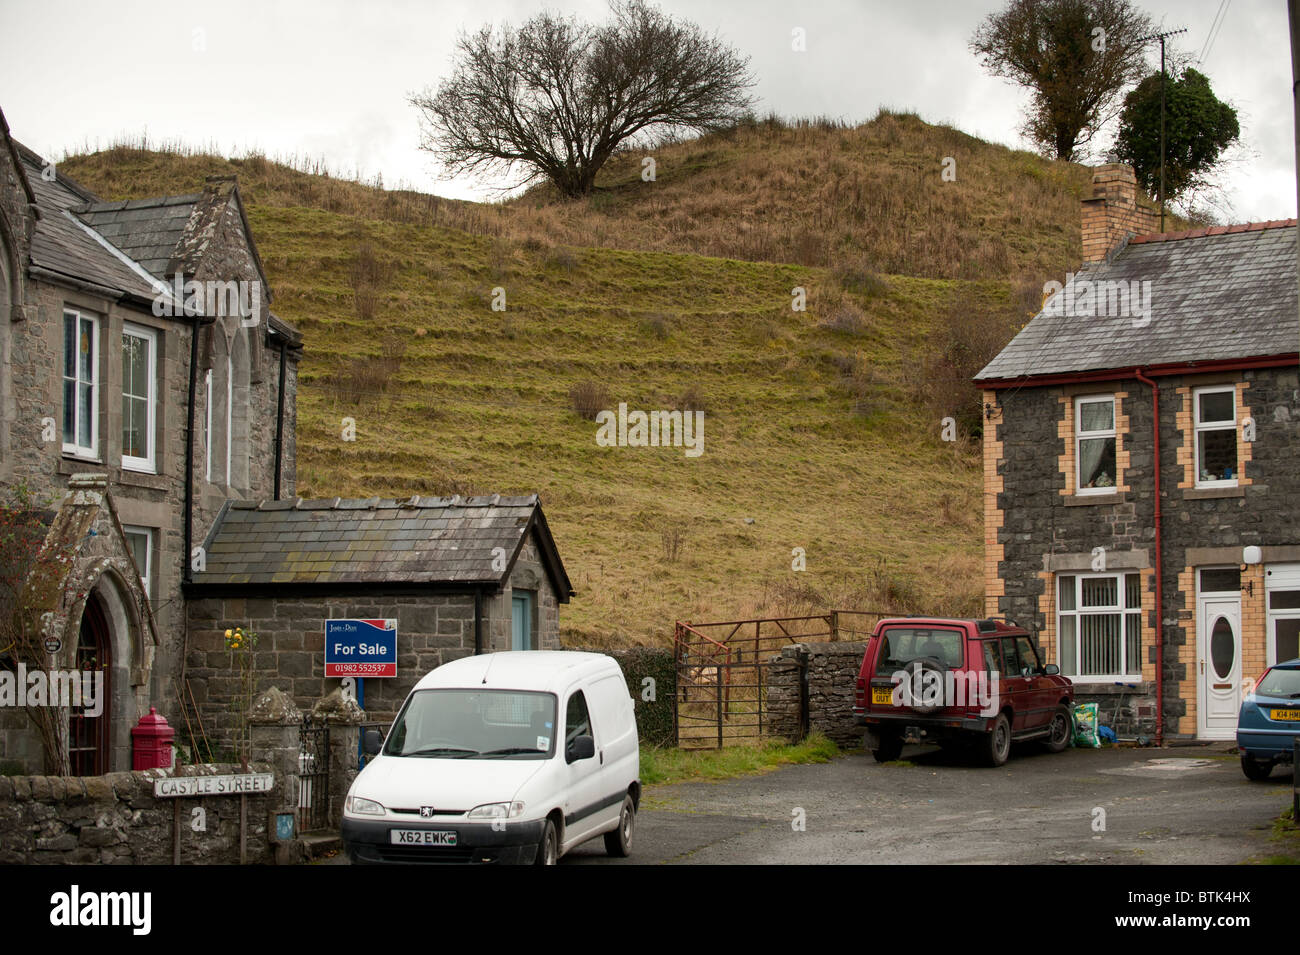 The remains of the Motte and Bailey castle in Builth Wells Powys wales UK Stock Photo